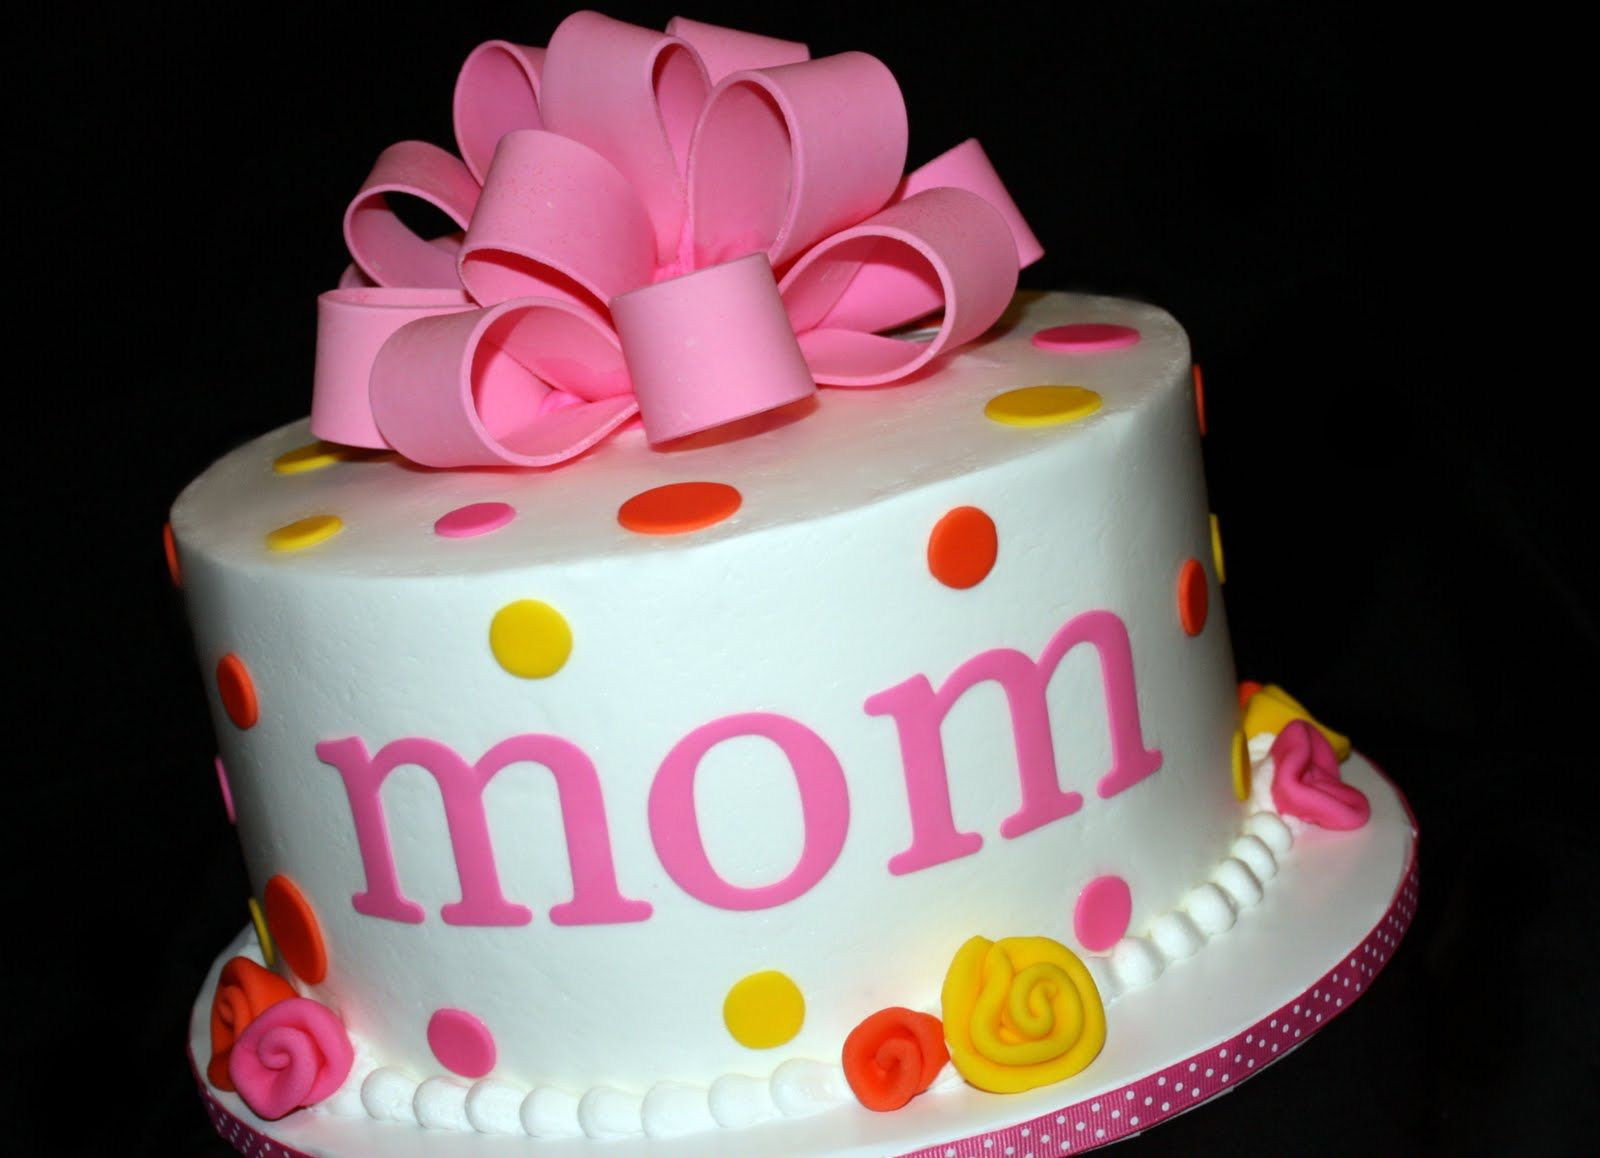 Cake Design For Mother : fun cakes Mom Birthday Cake fun cakes Pinterest ...